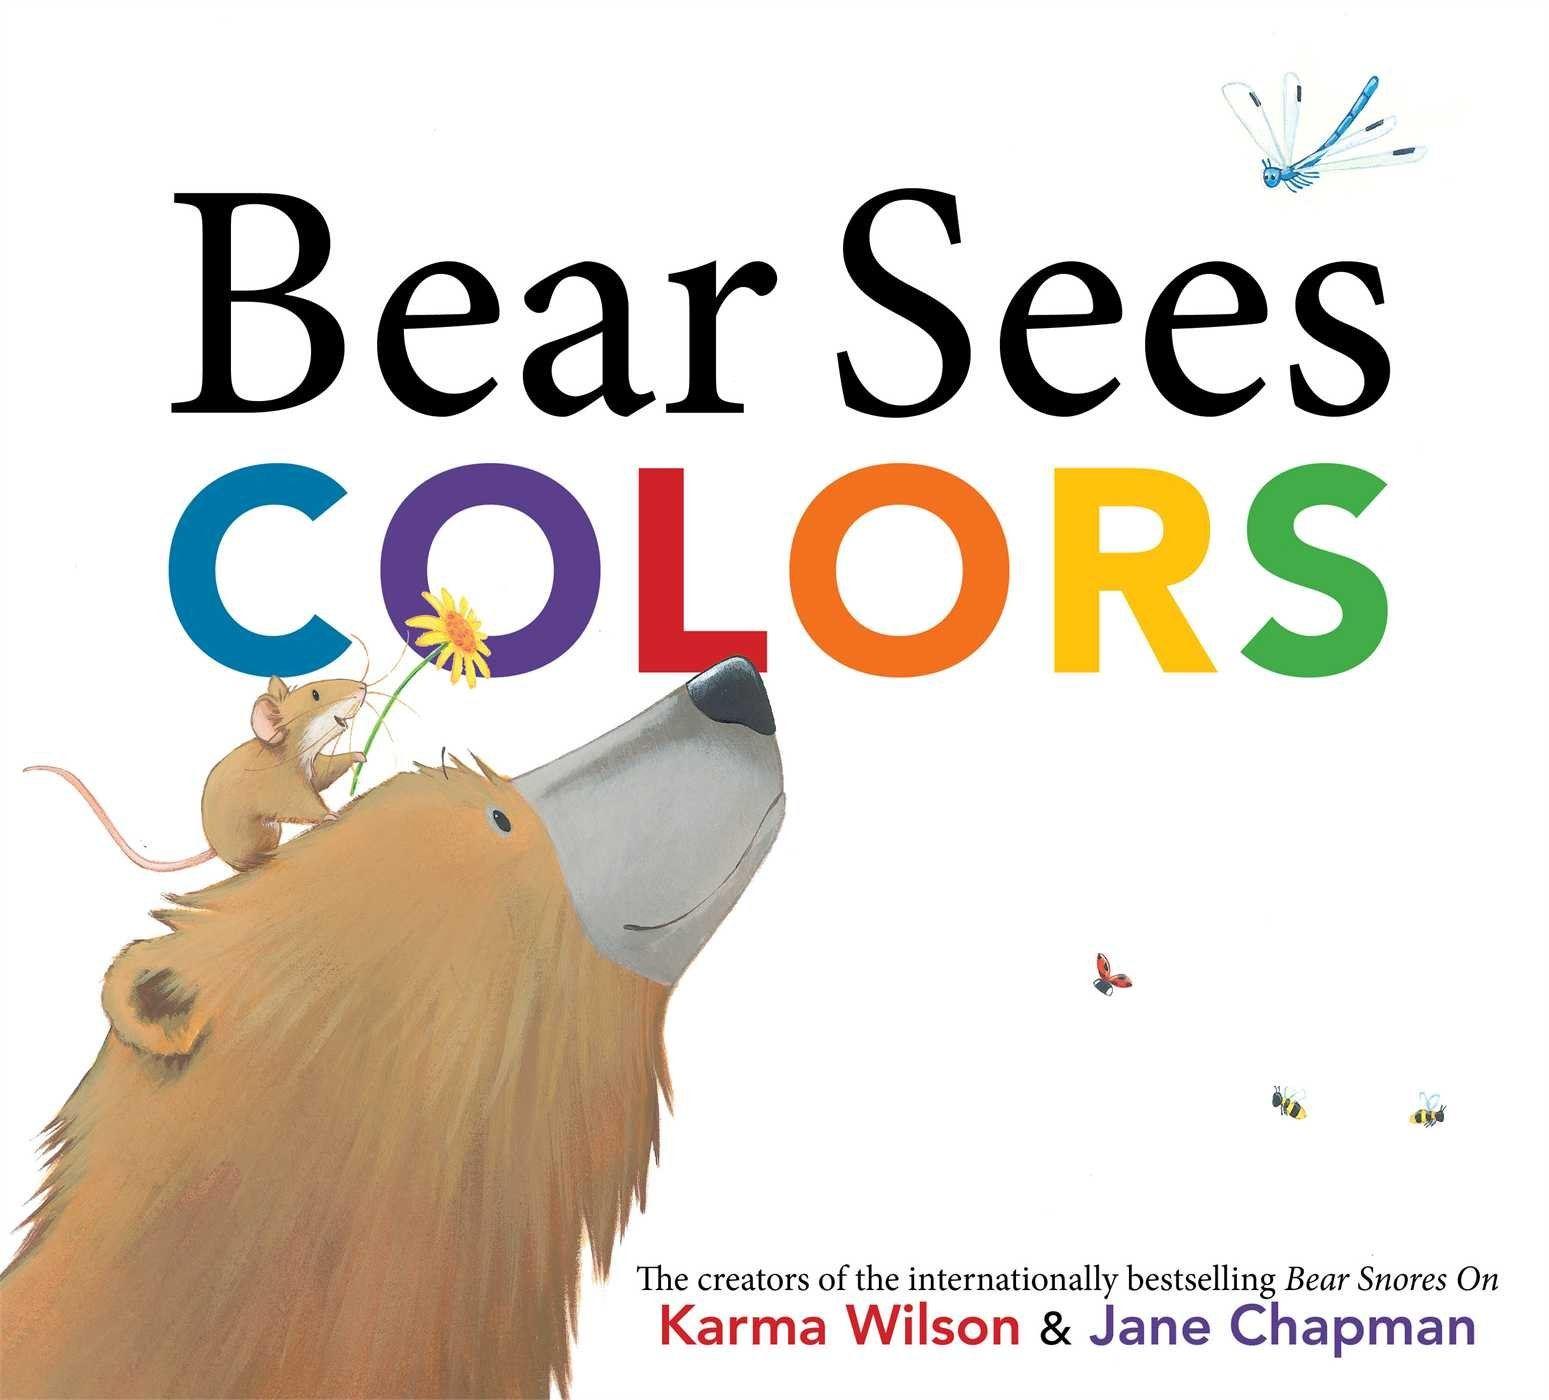 book cover for bear sees colors by karma wilson and jane chapman